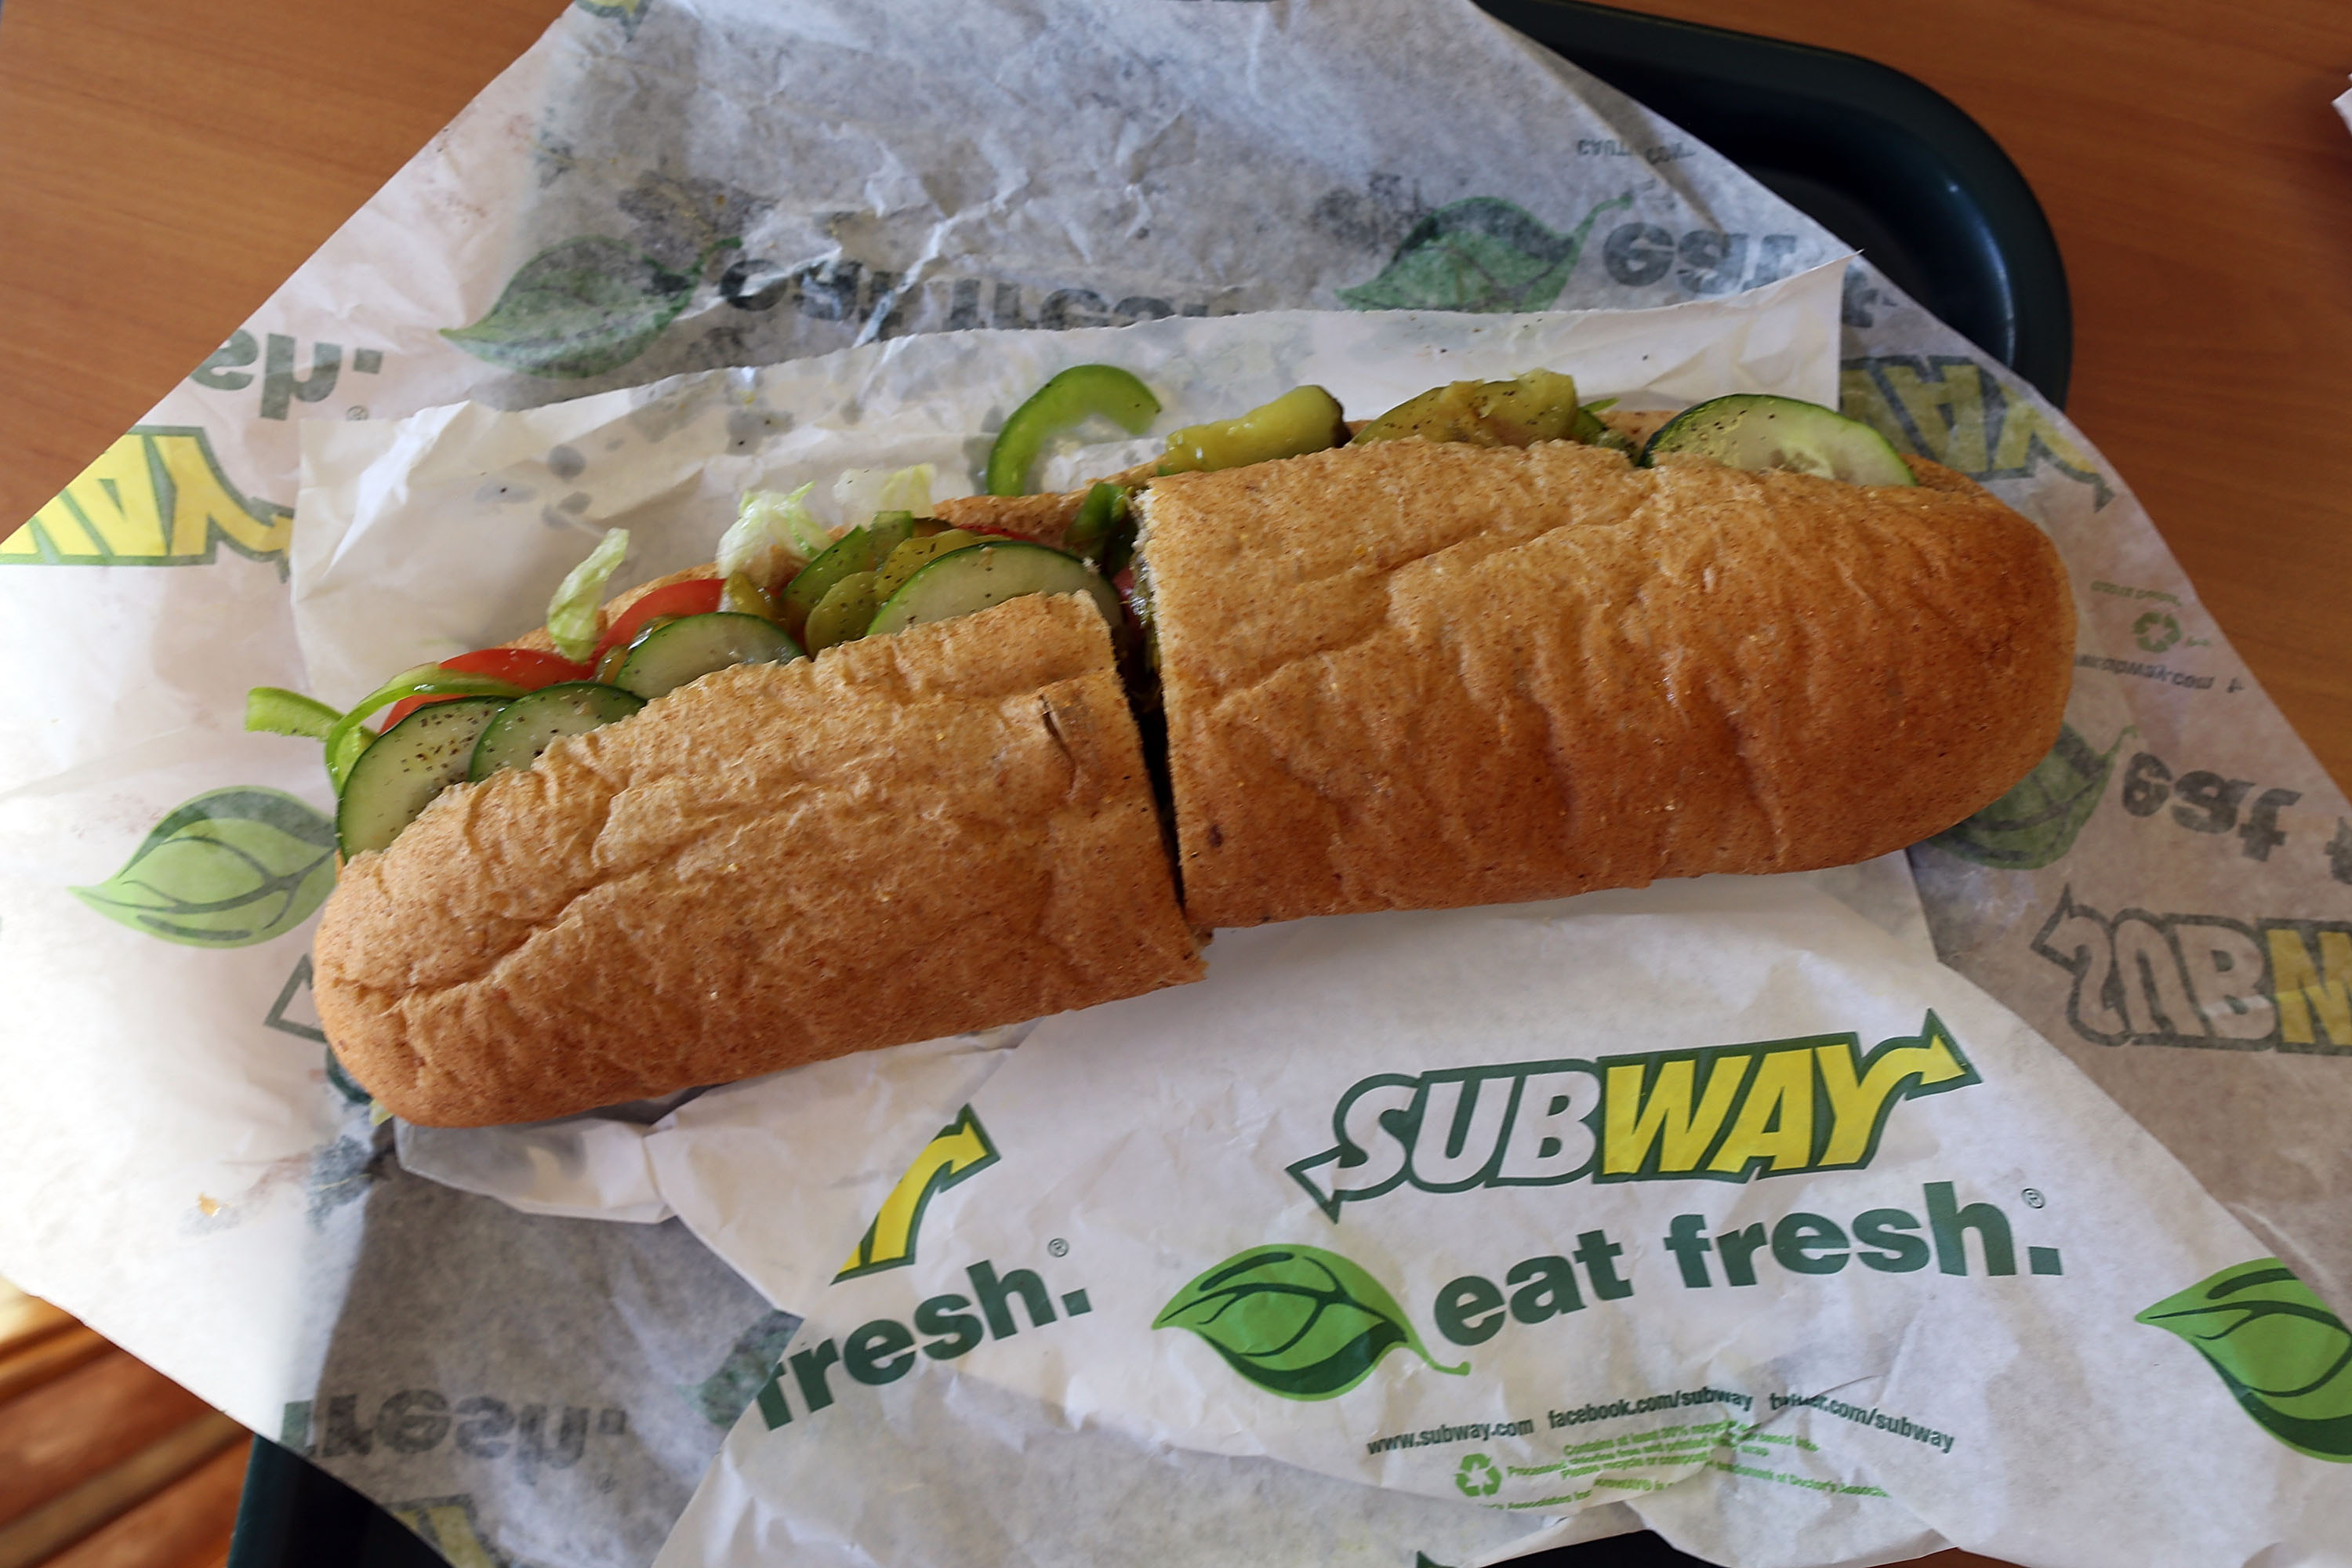 Subway sandwich length